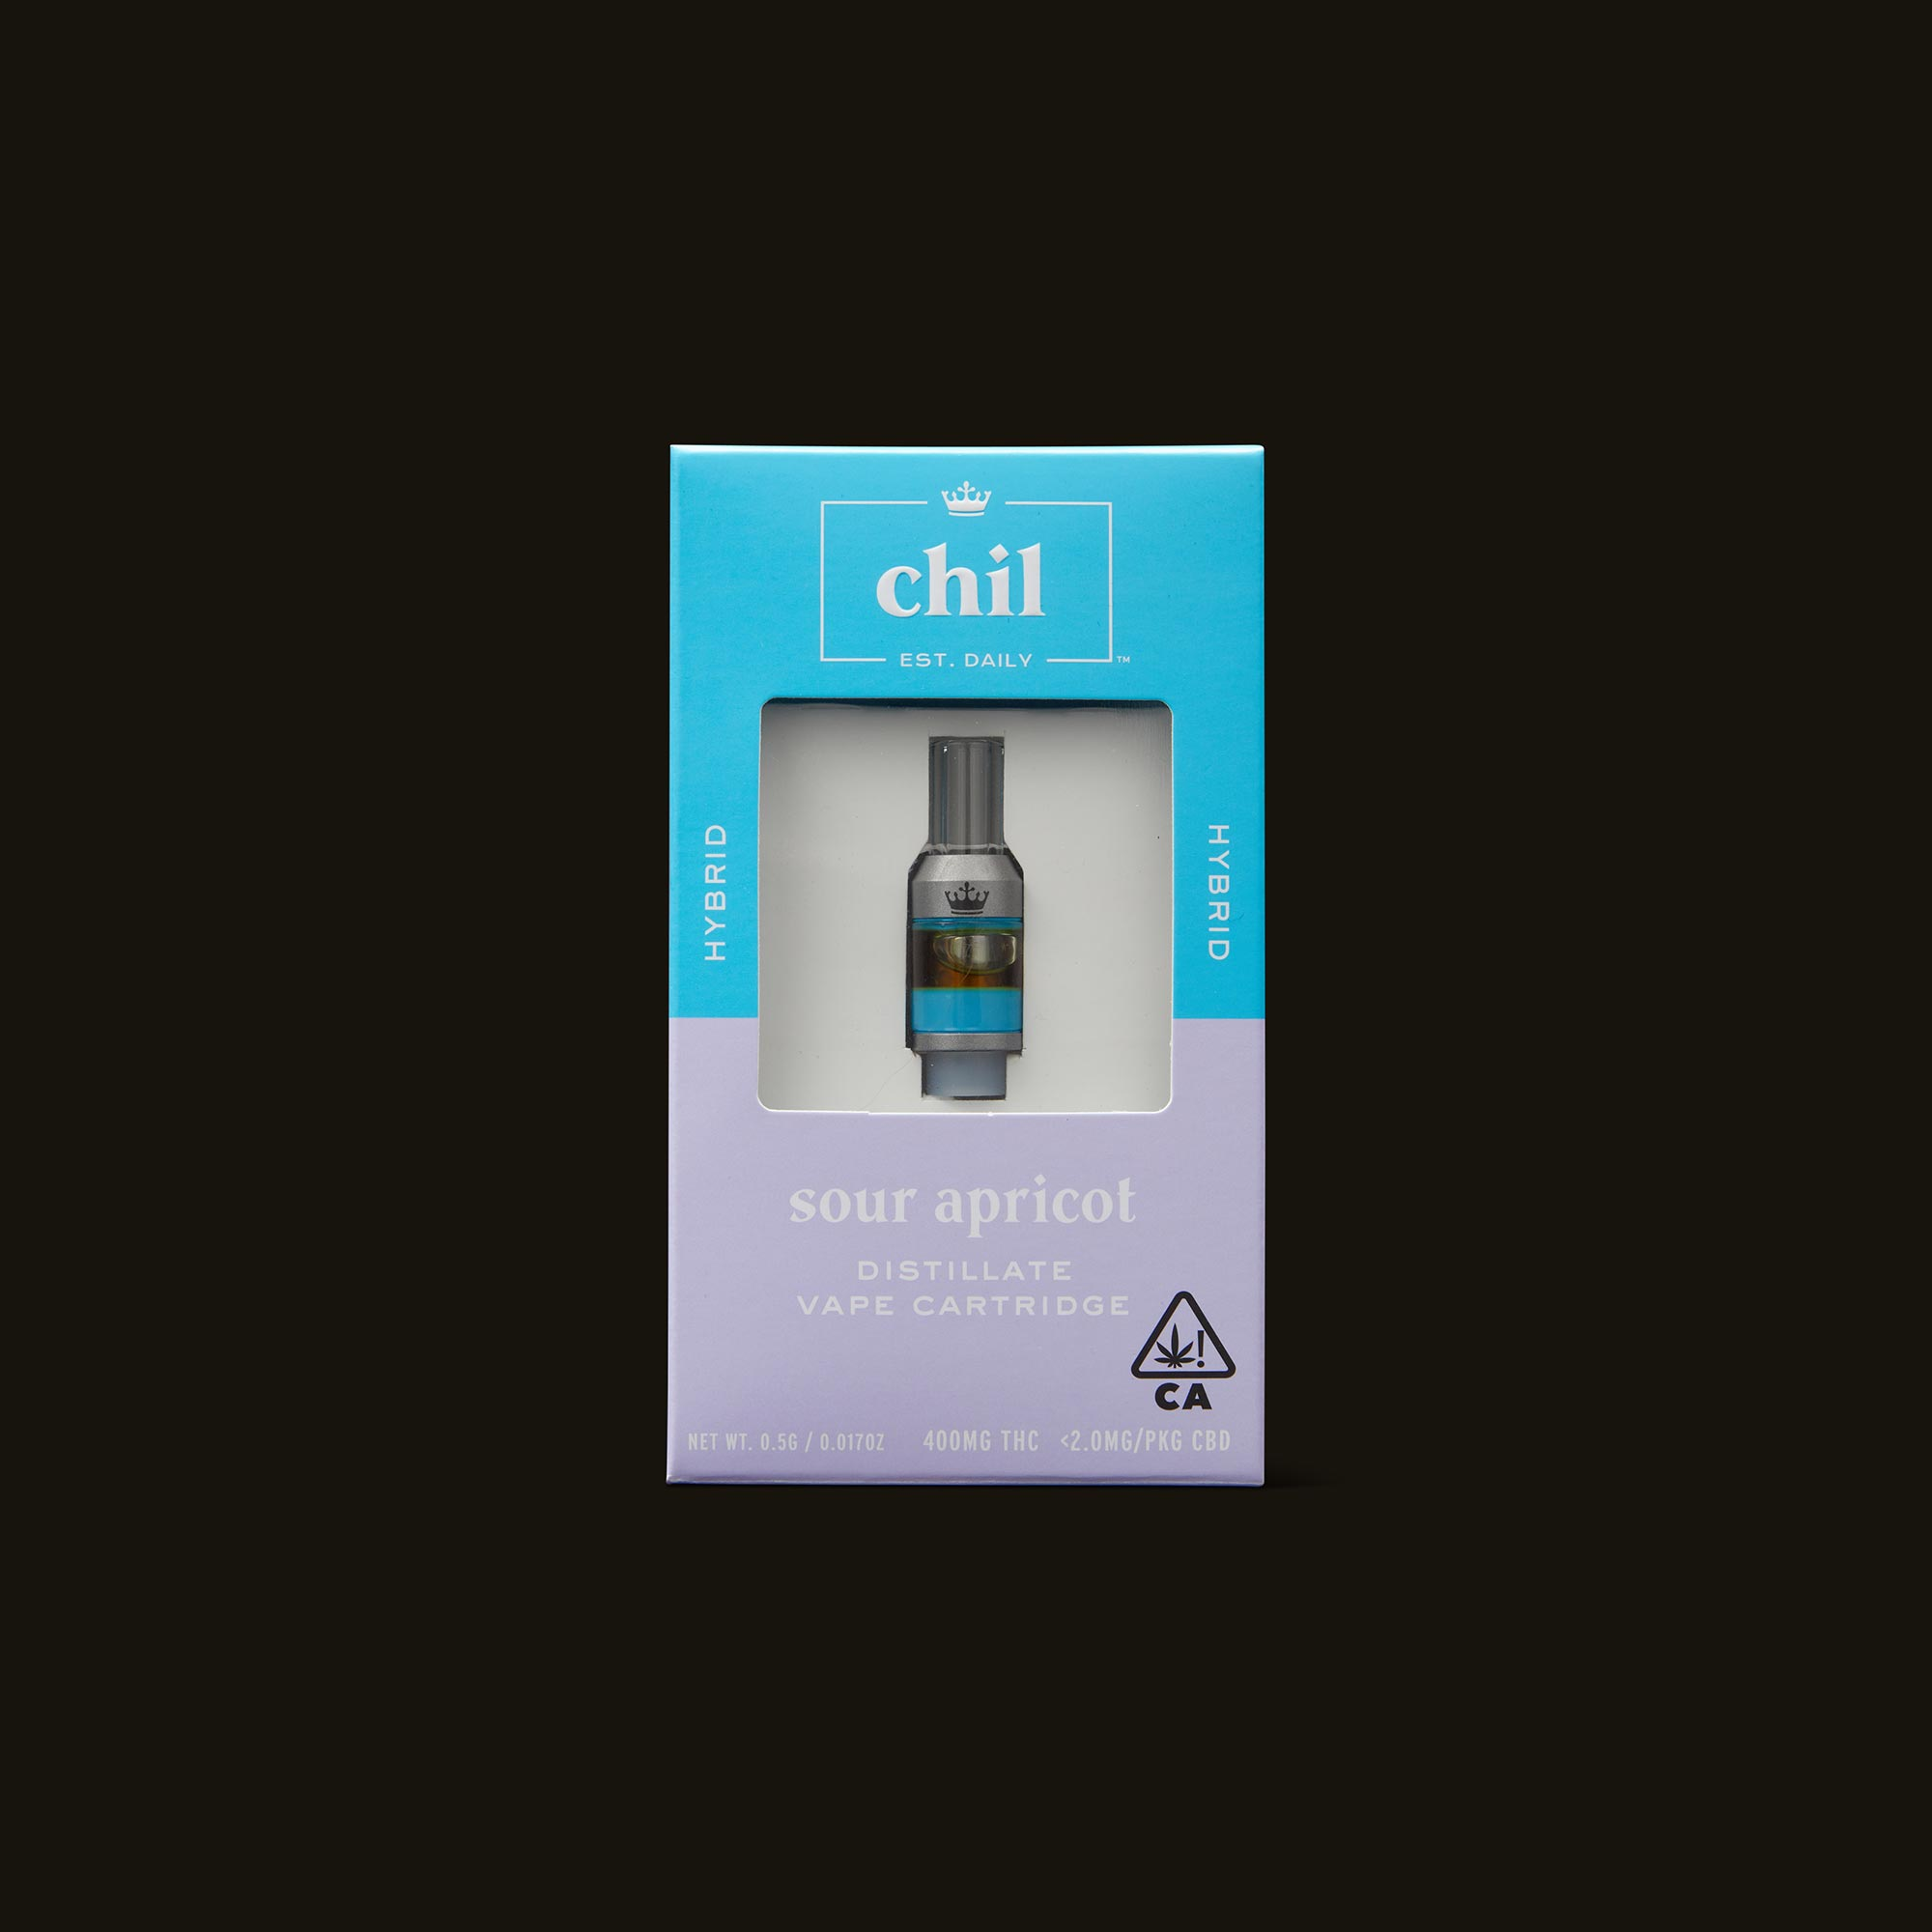 Chil Sour Apricot Cartridge Front of Box